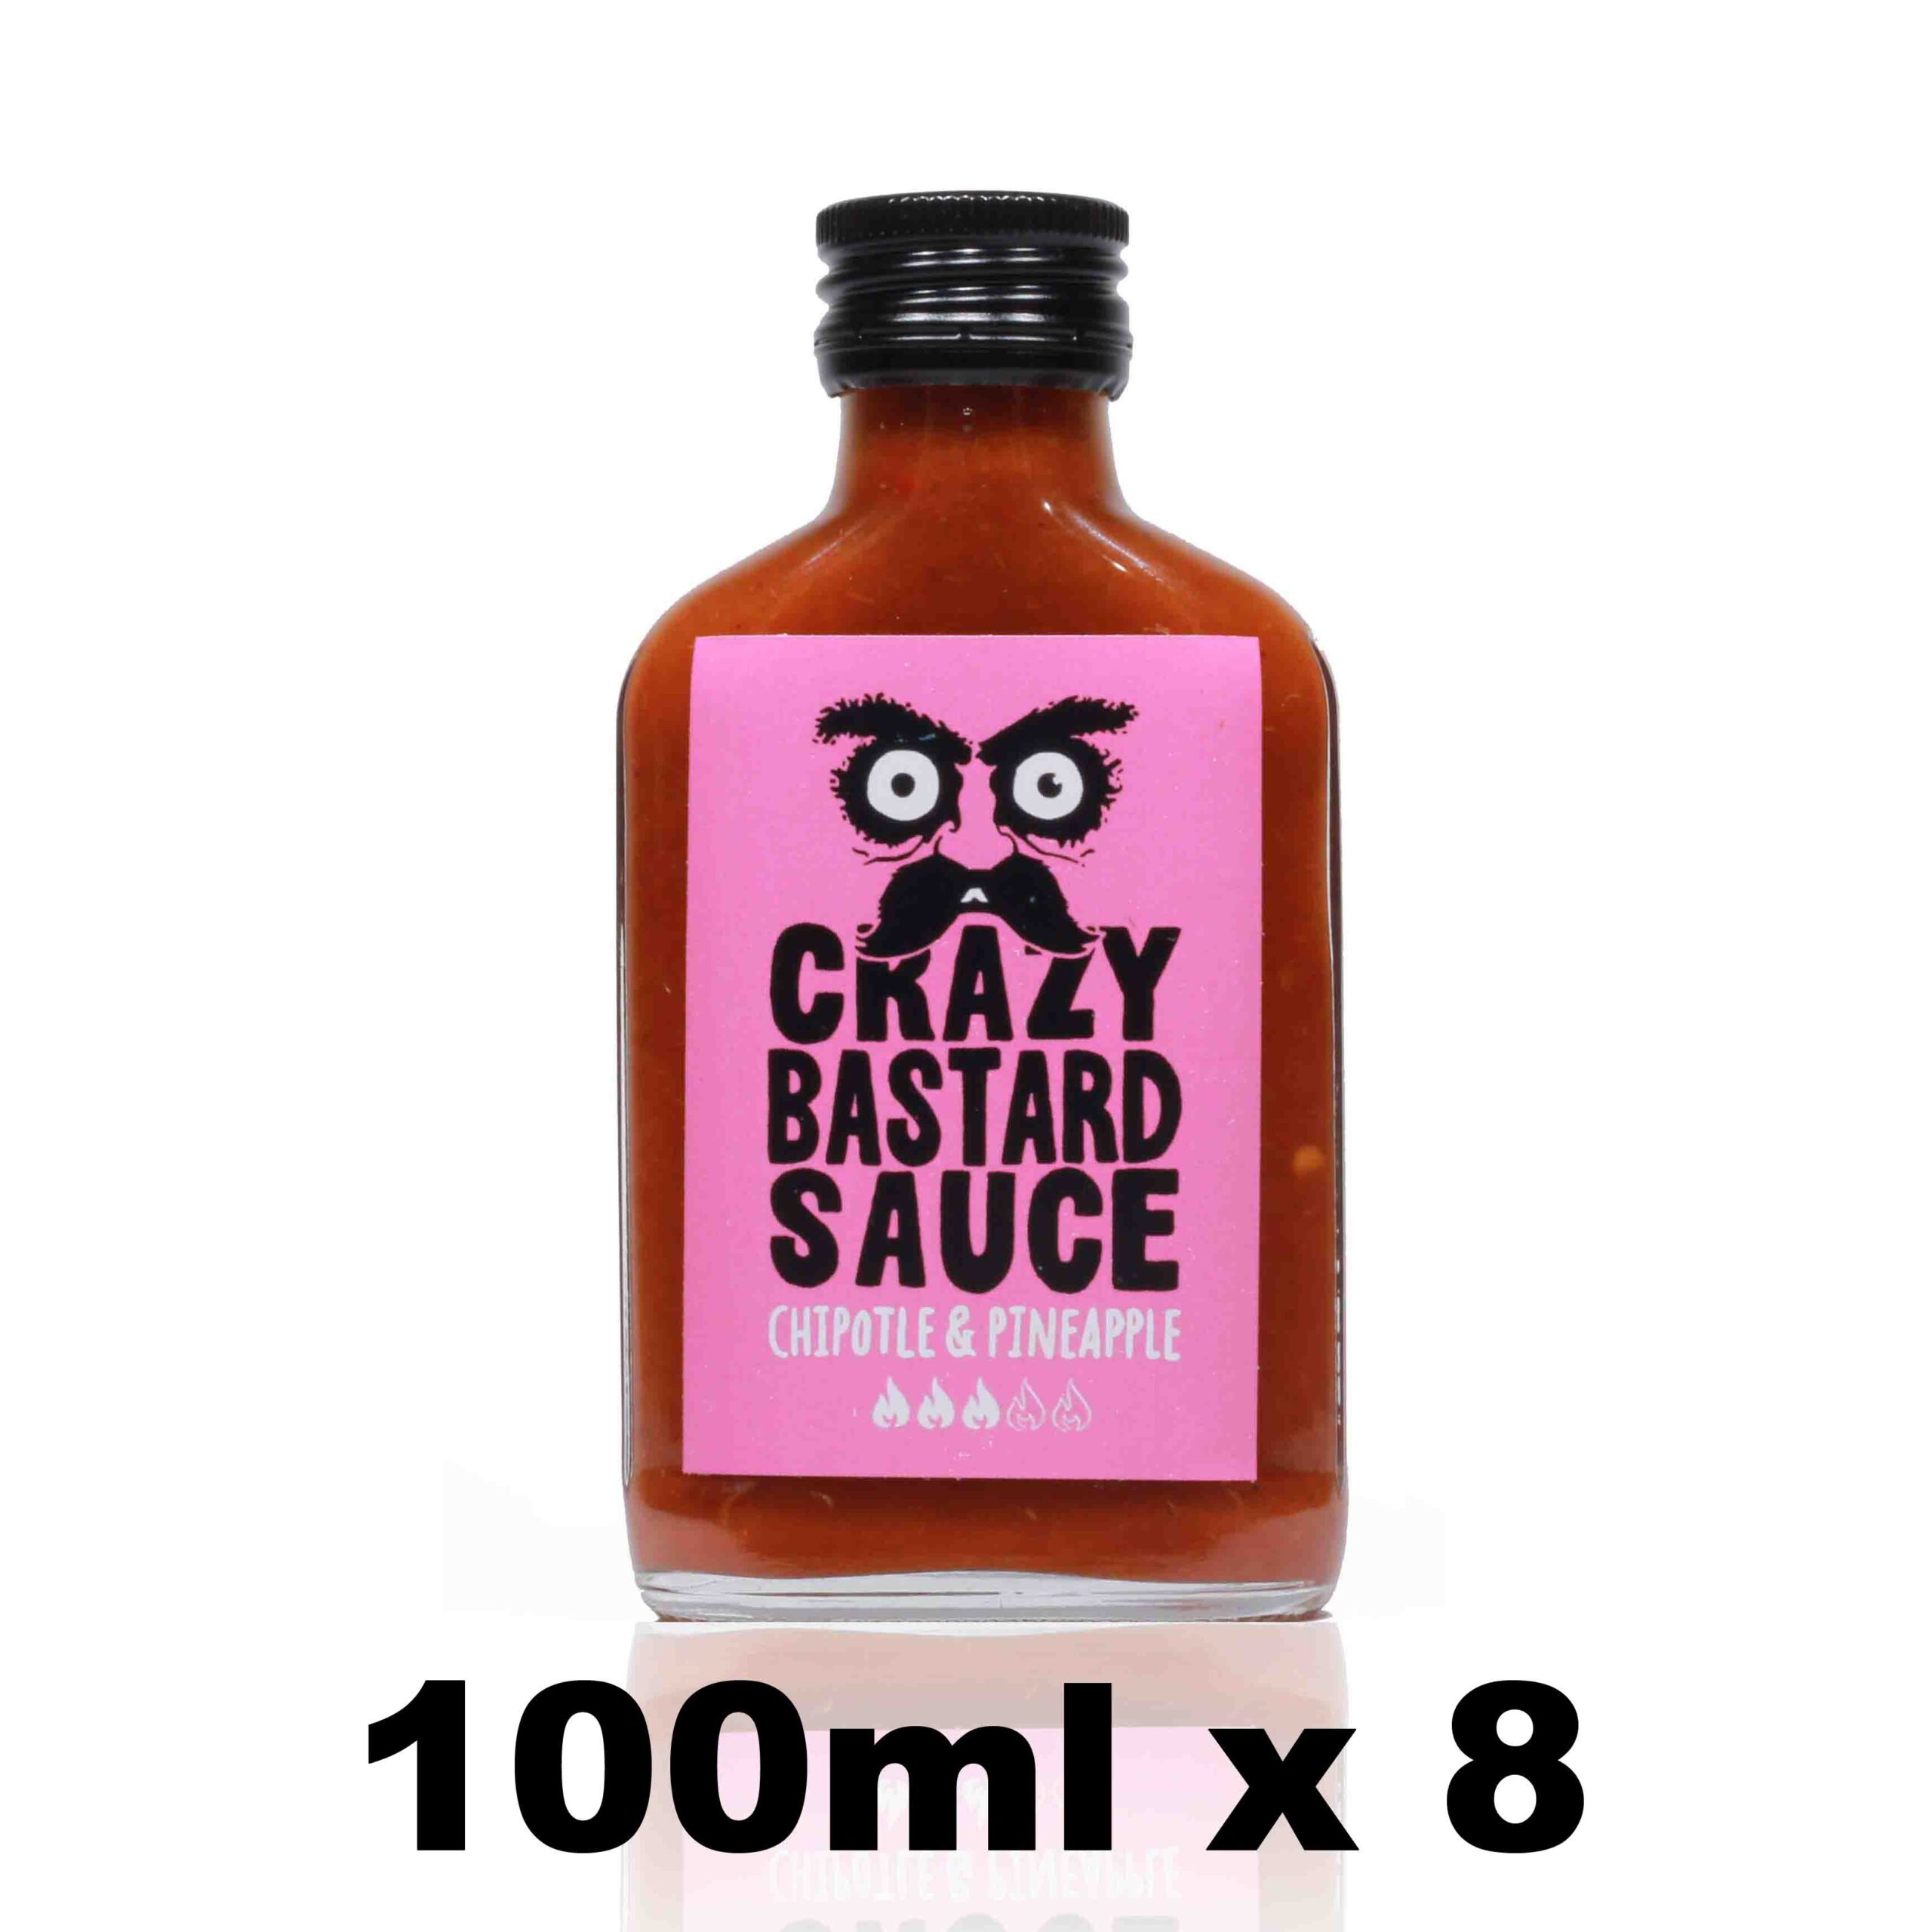 Chipotle & Pineapple 100ml x 8